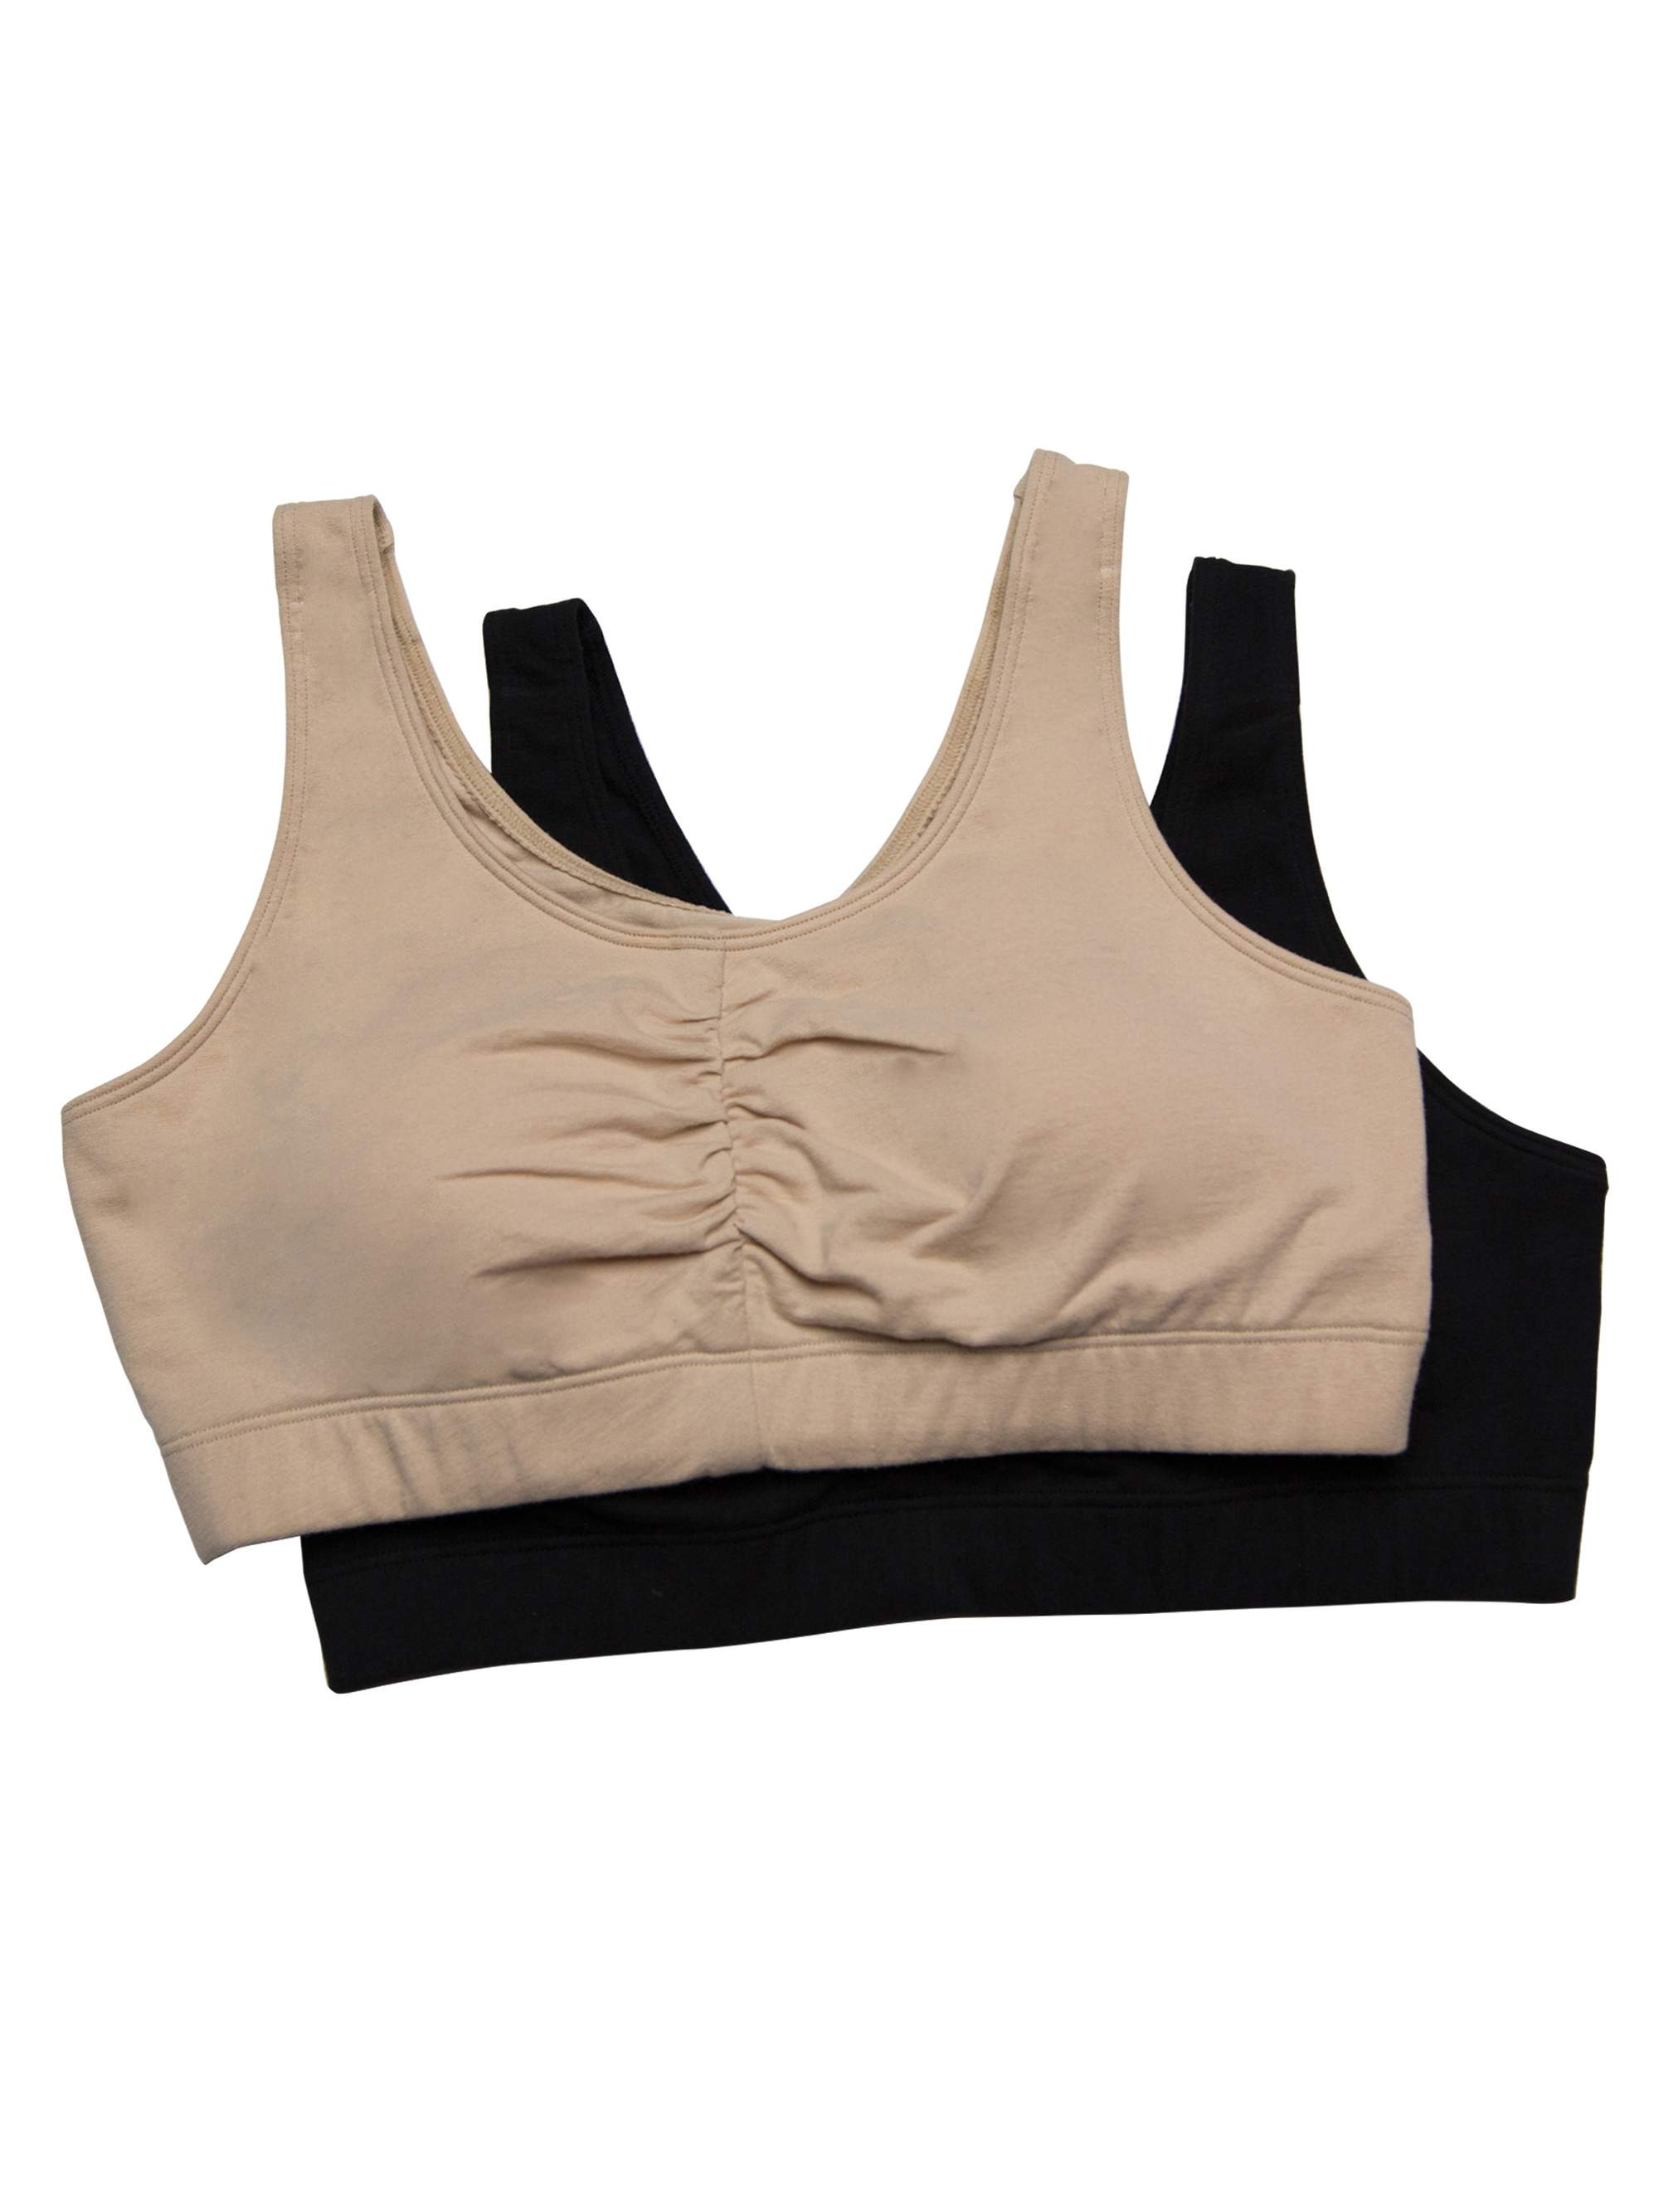 Womens Shirred Front Sport Bra with Removable Bra Pads, Style FT438, 2-Pack